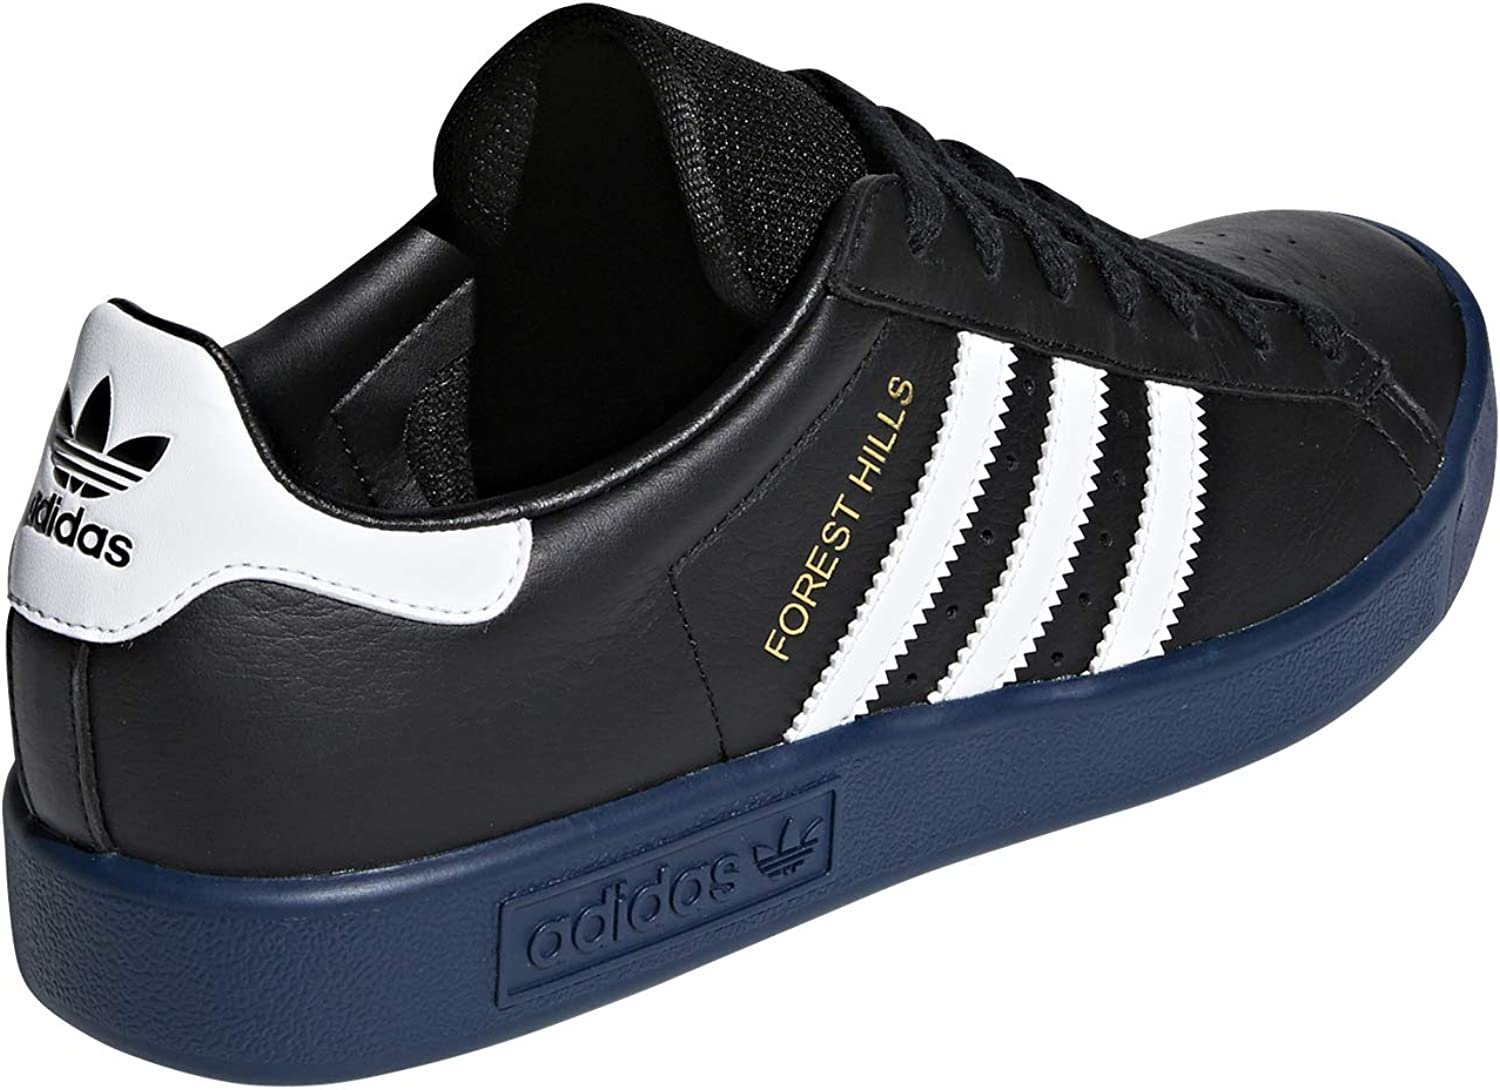 adidas Boy's Forest Hills Fitness Shoes